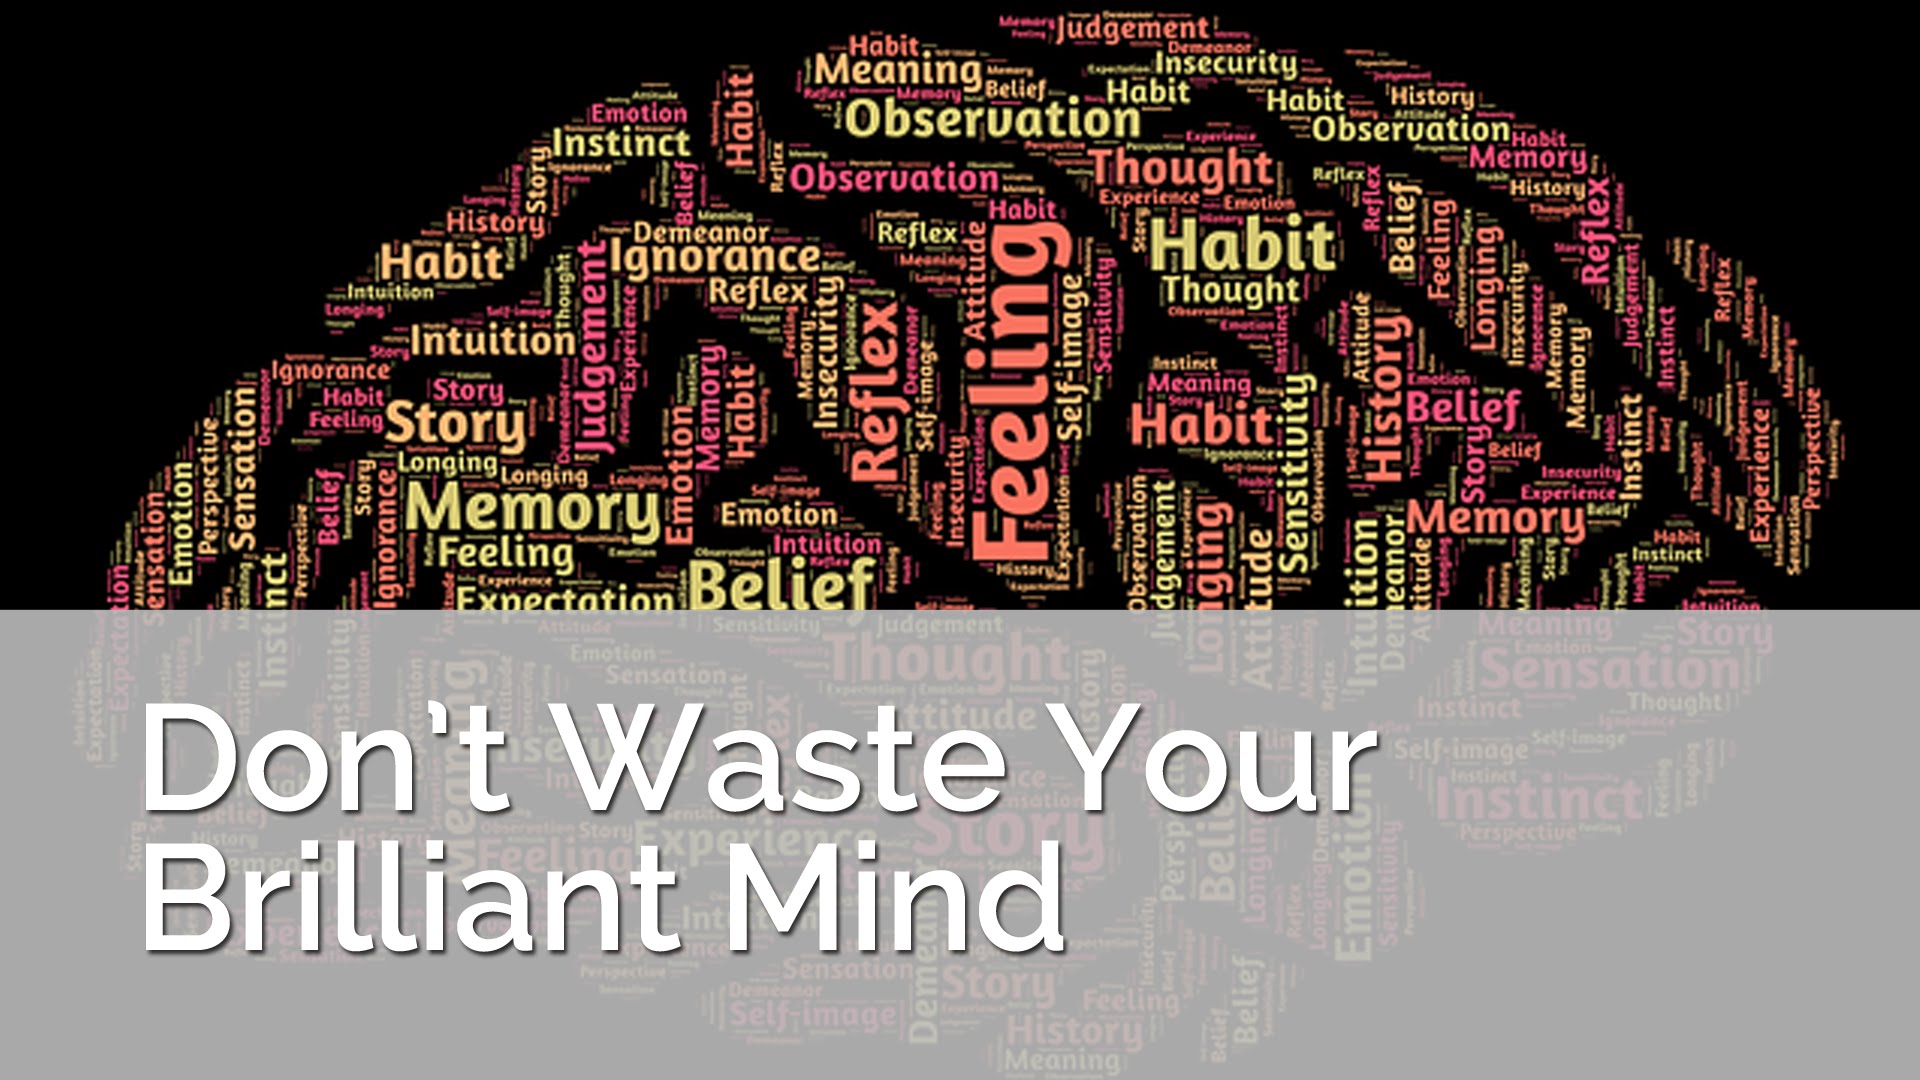 Don't Waste Your Brilliant Mind